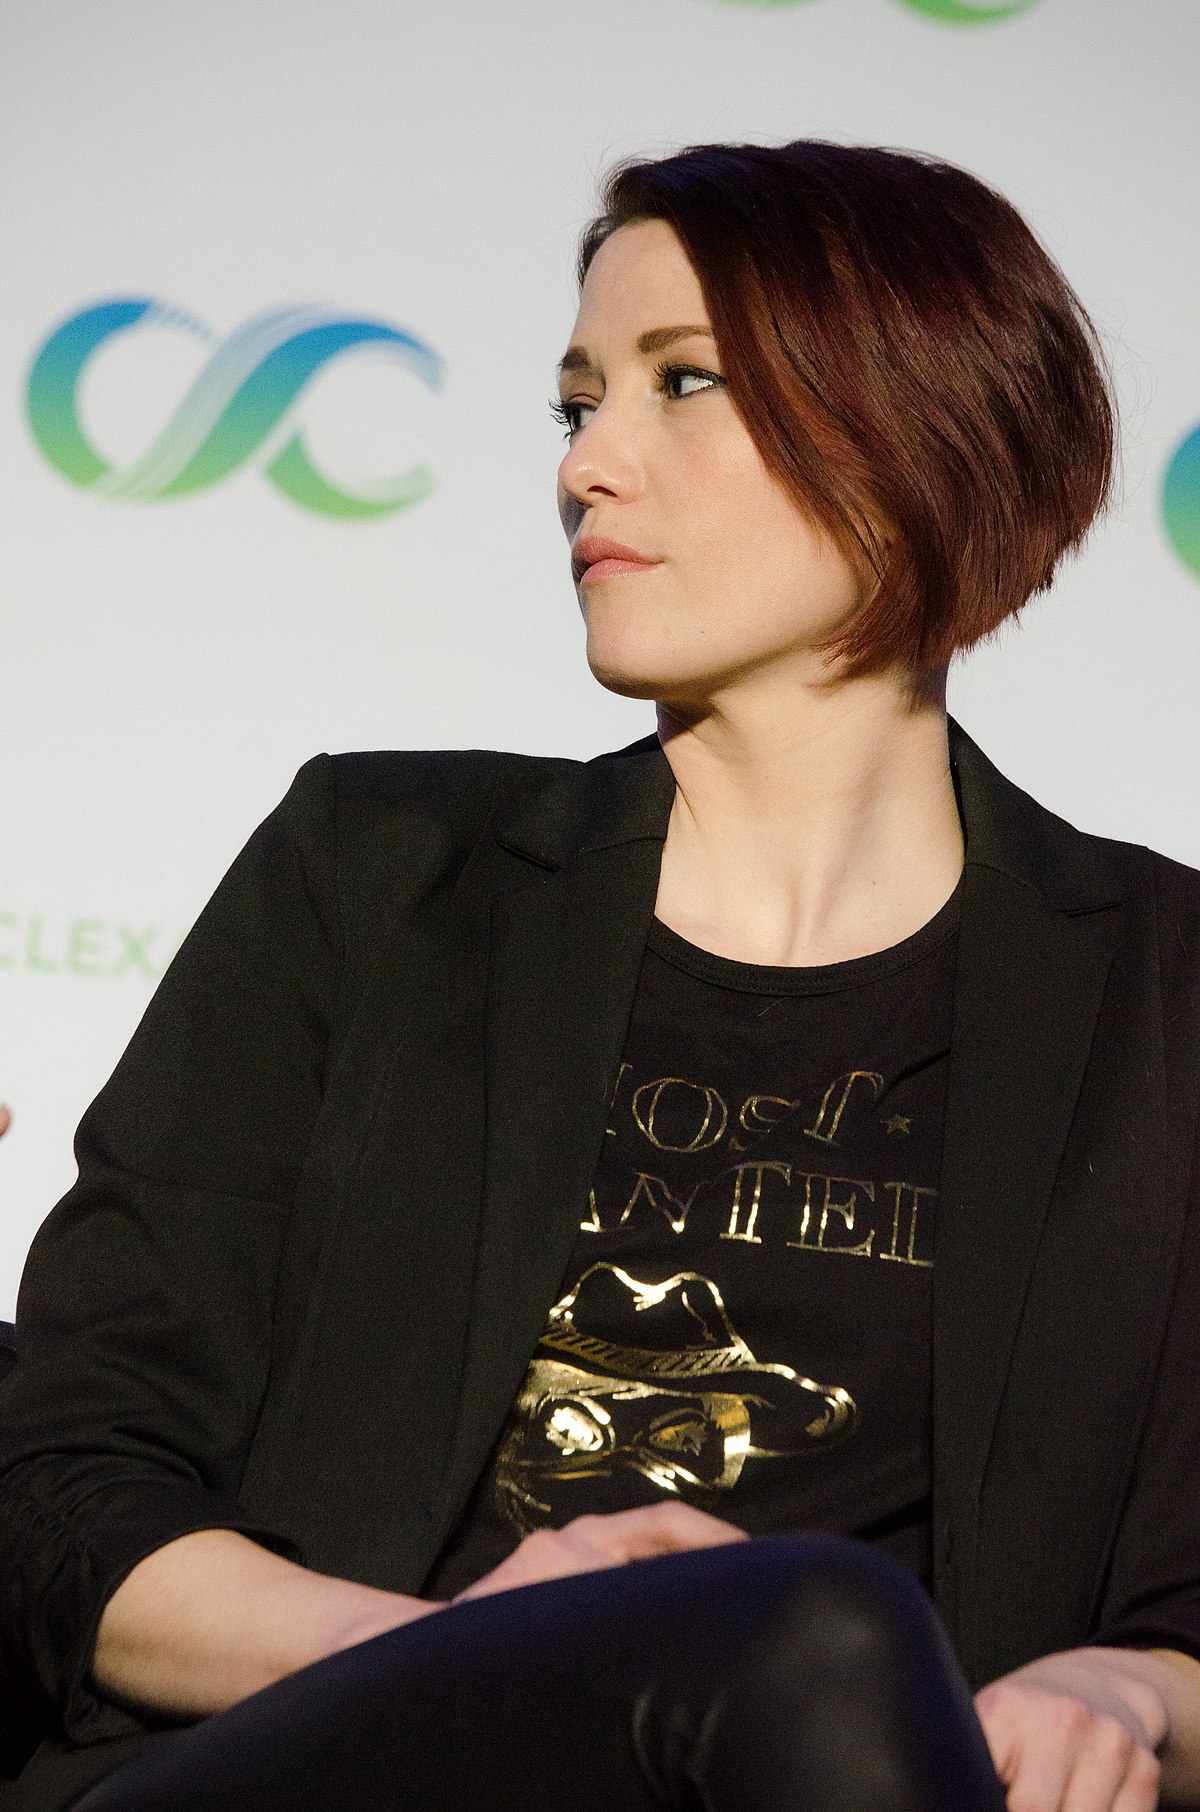 Chyler Leigh Wikipdia